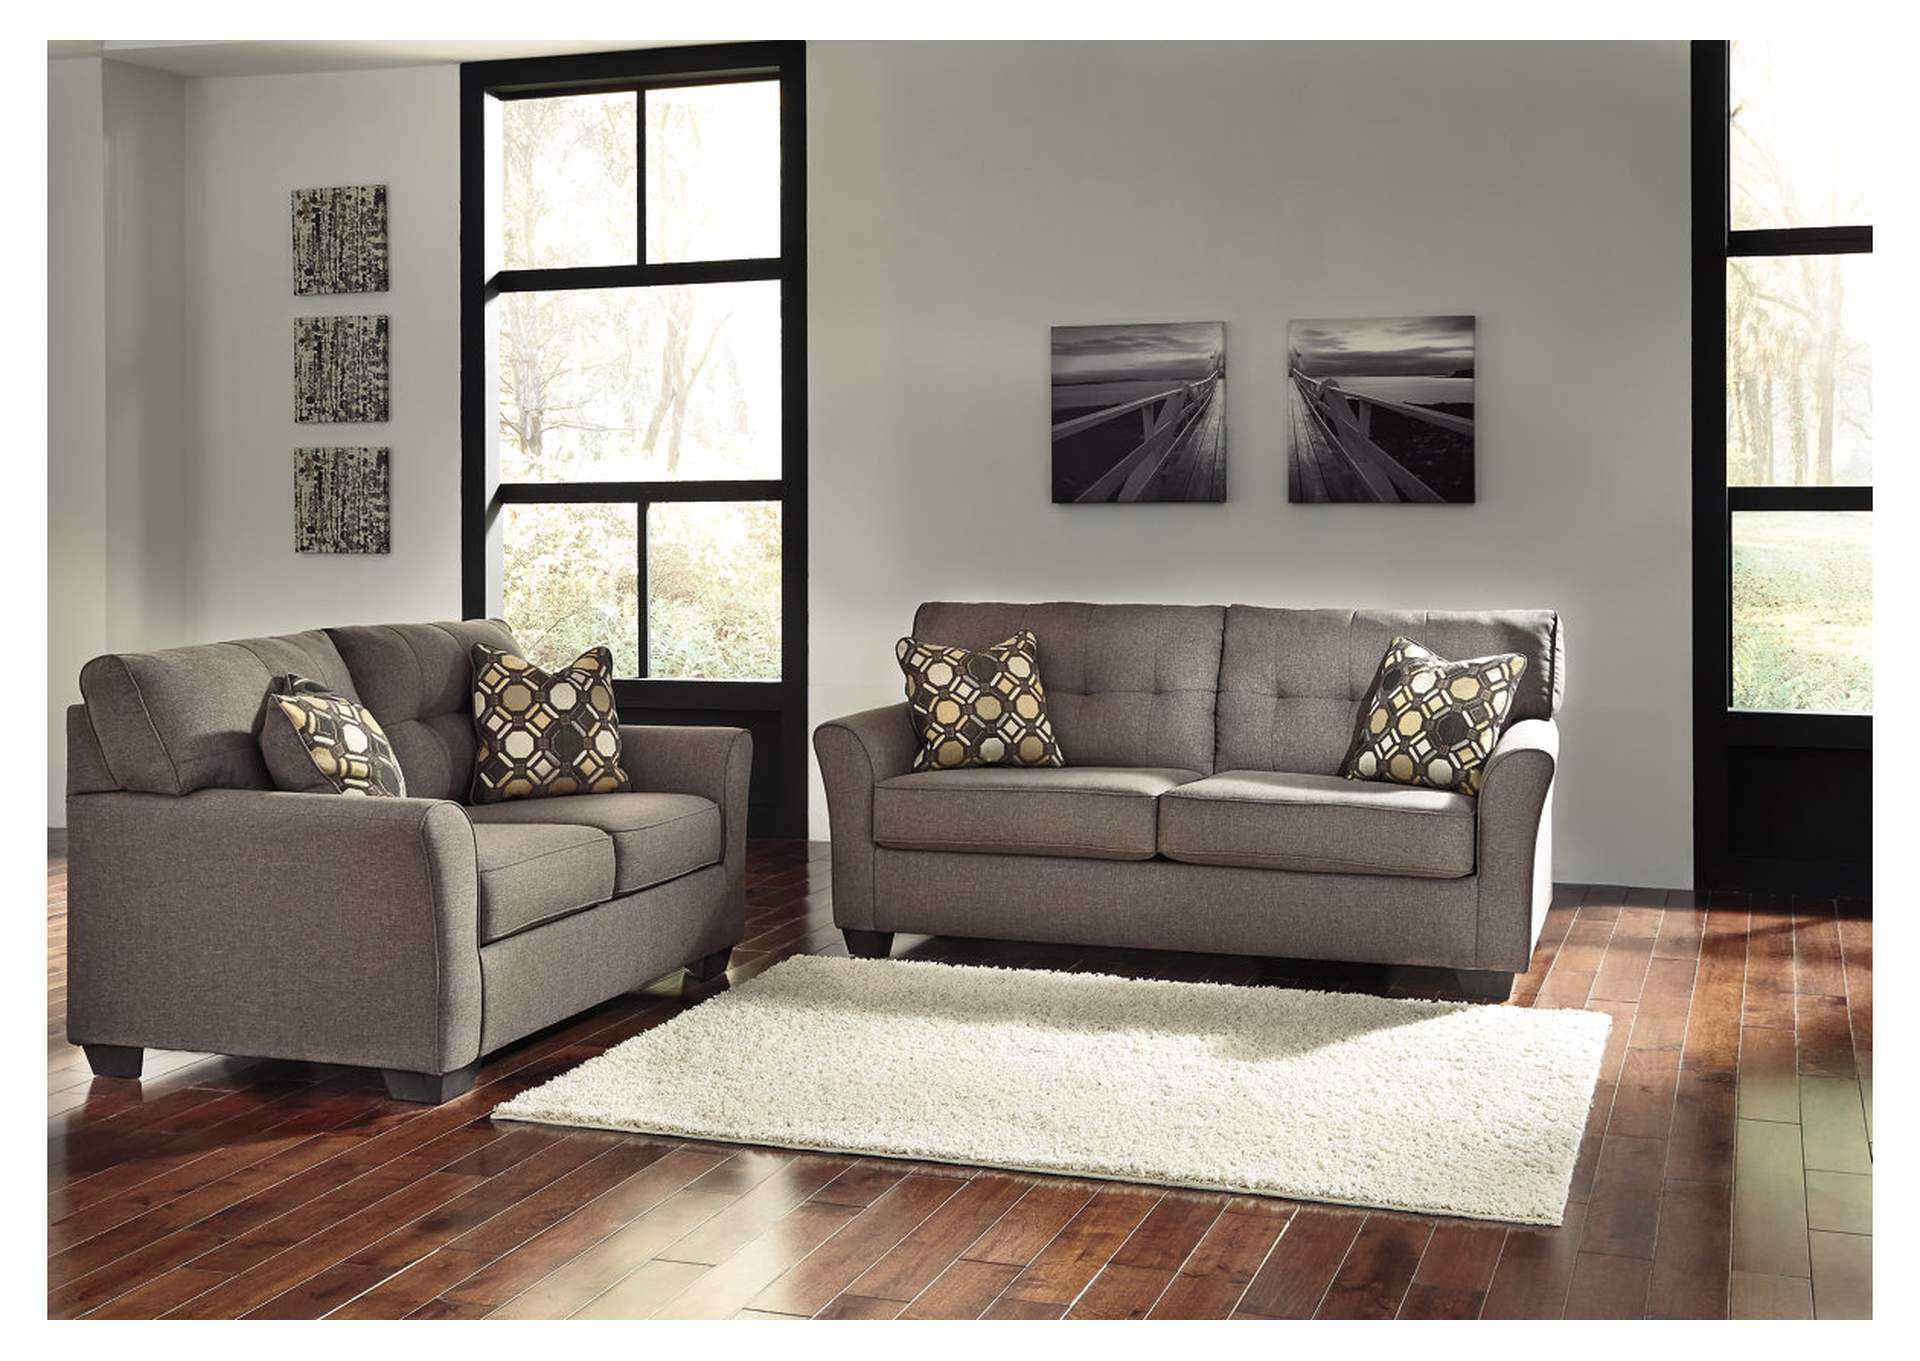 Home gallery furniture store philadelphia pa tibbee Ashley furniture living room design